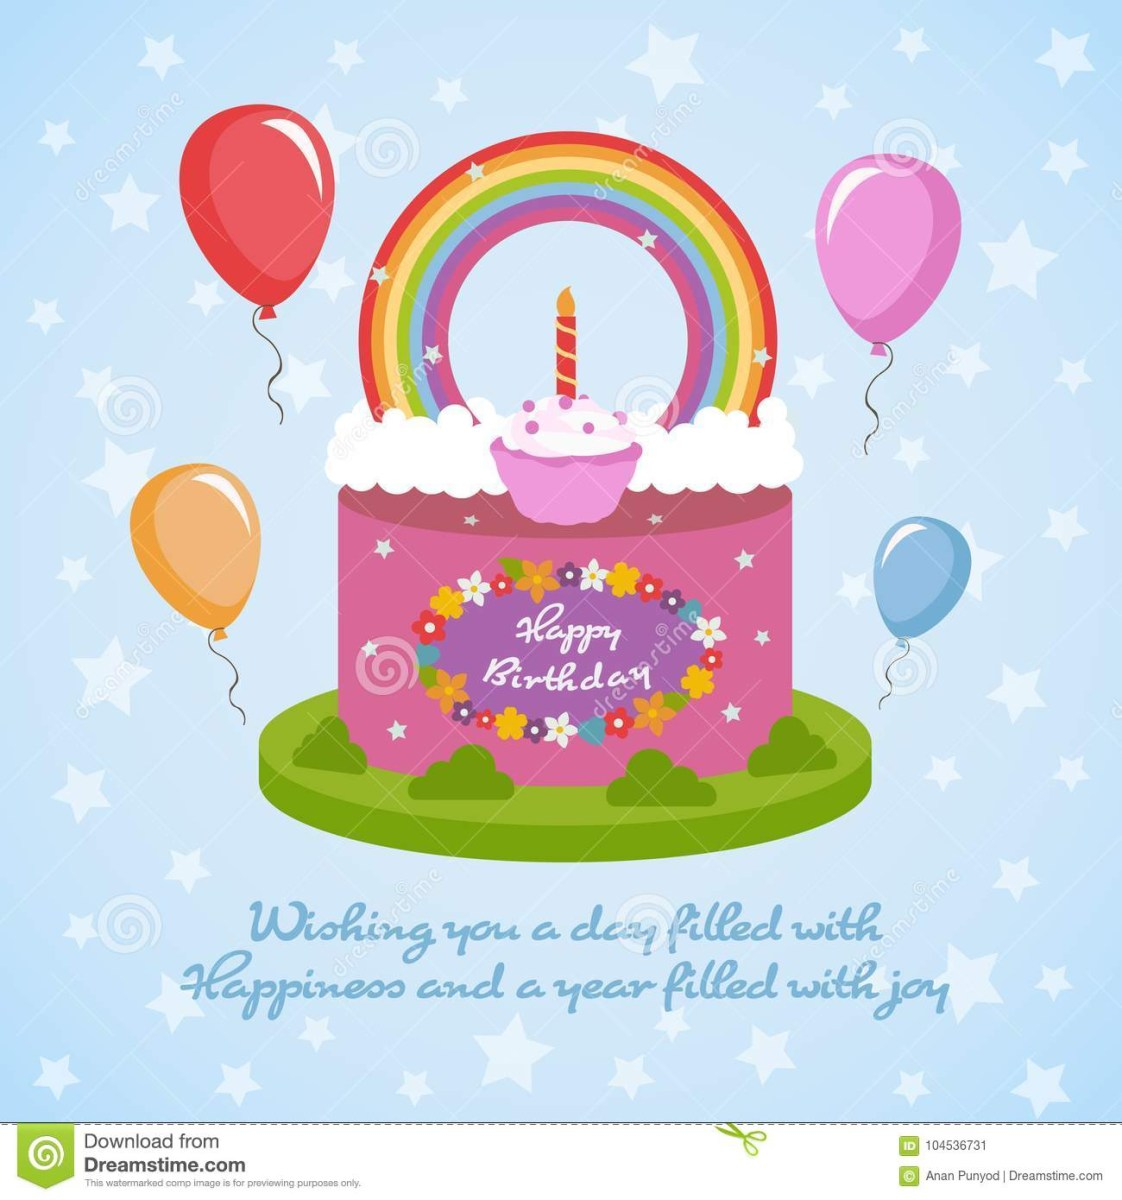 Happy Birthday Cake And Flowers Rainbow Clude Topping Balloon On